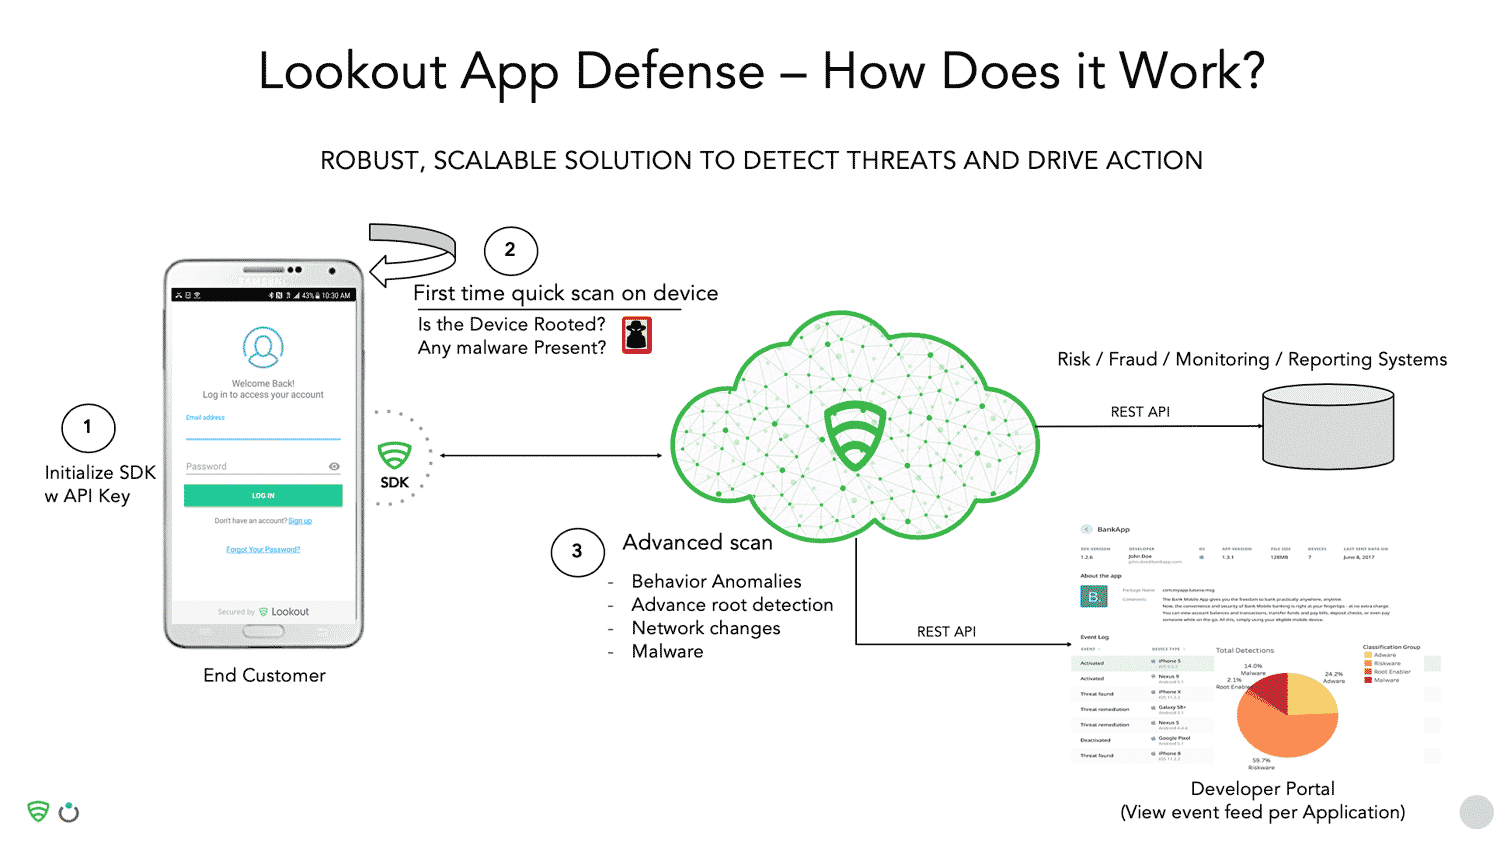 Lookout App Defense – How Does it Work?